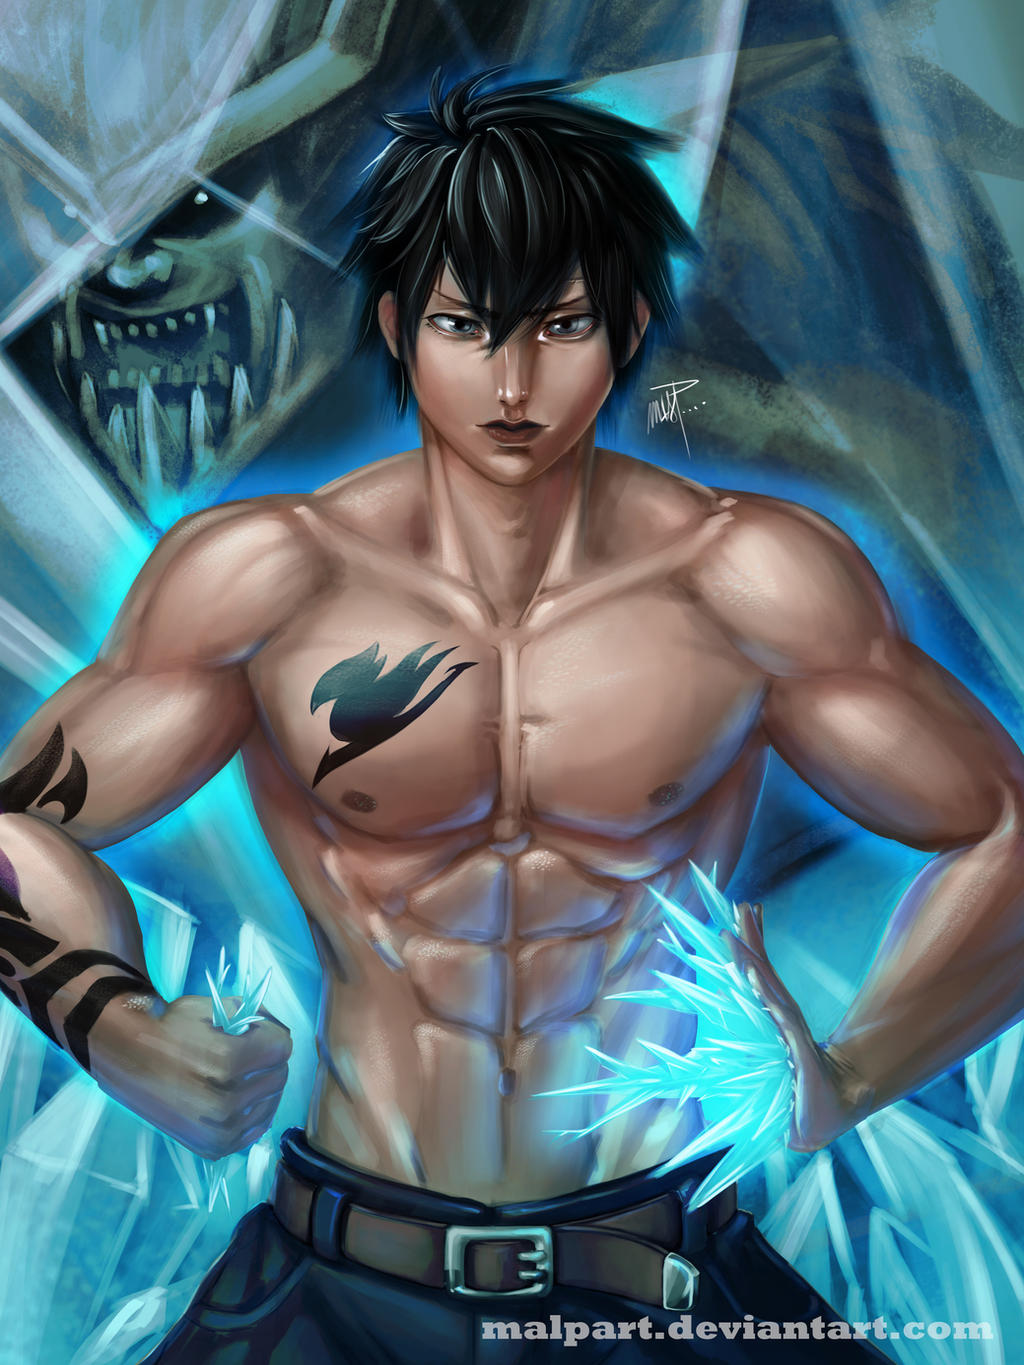 Gray Fullbuster - Fairy Tail by MALPart on DeviantArt